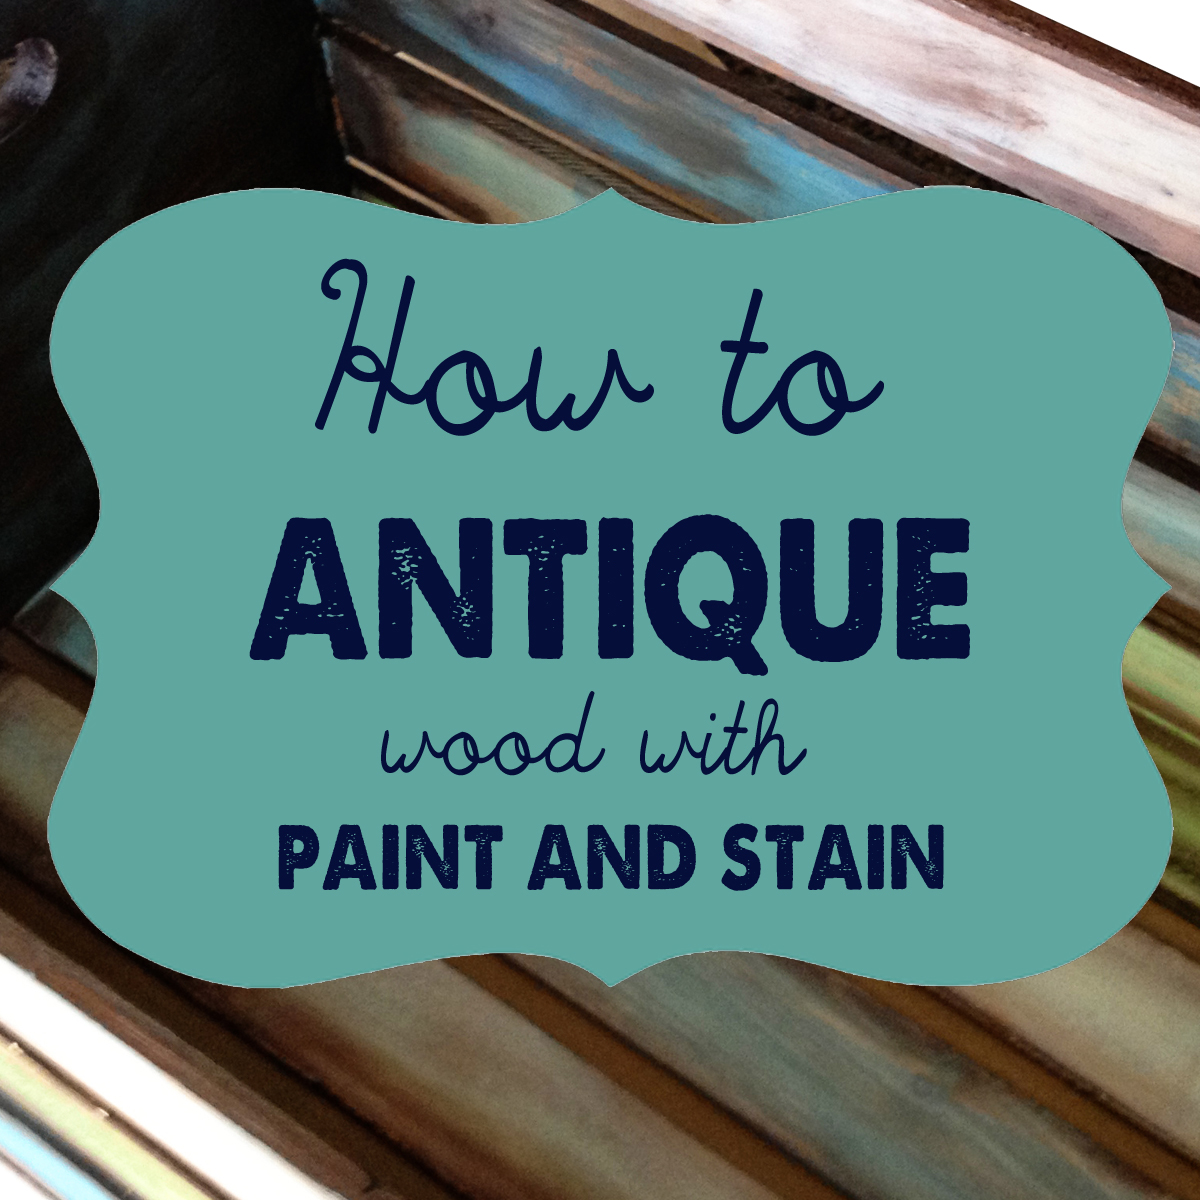 How To Antique Wood With Paint And Stain All Things Thrifty